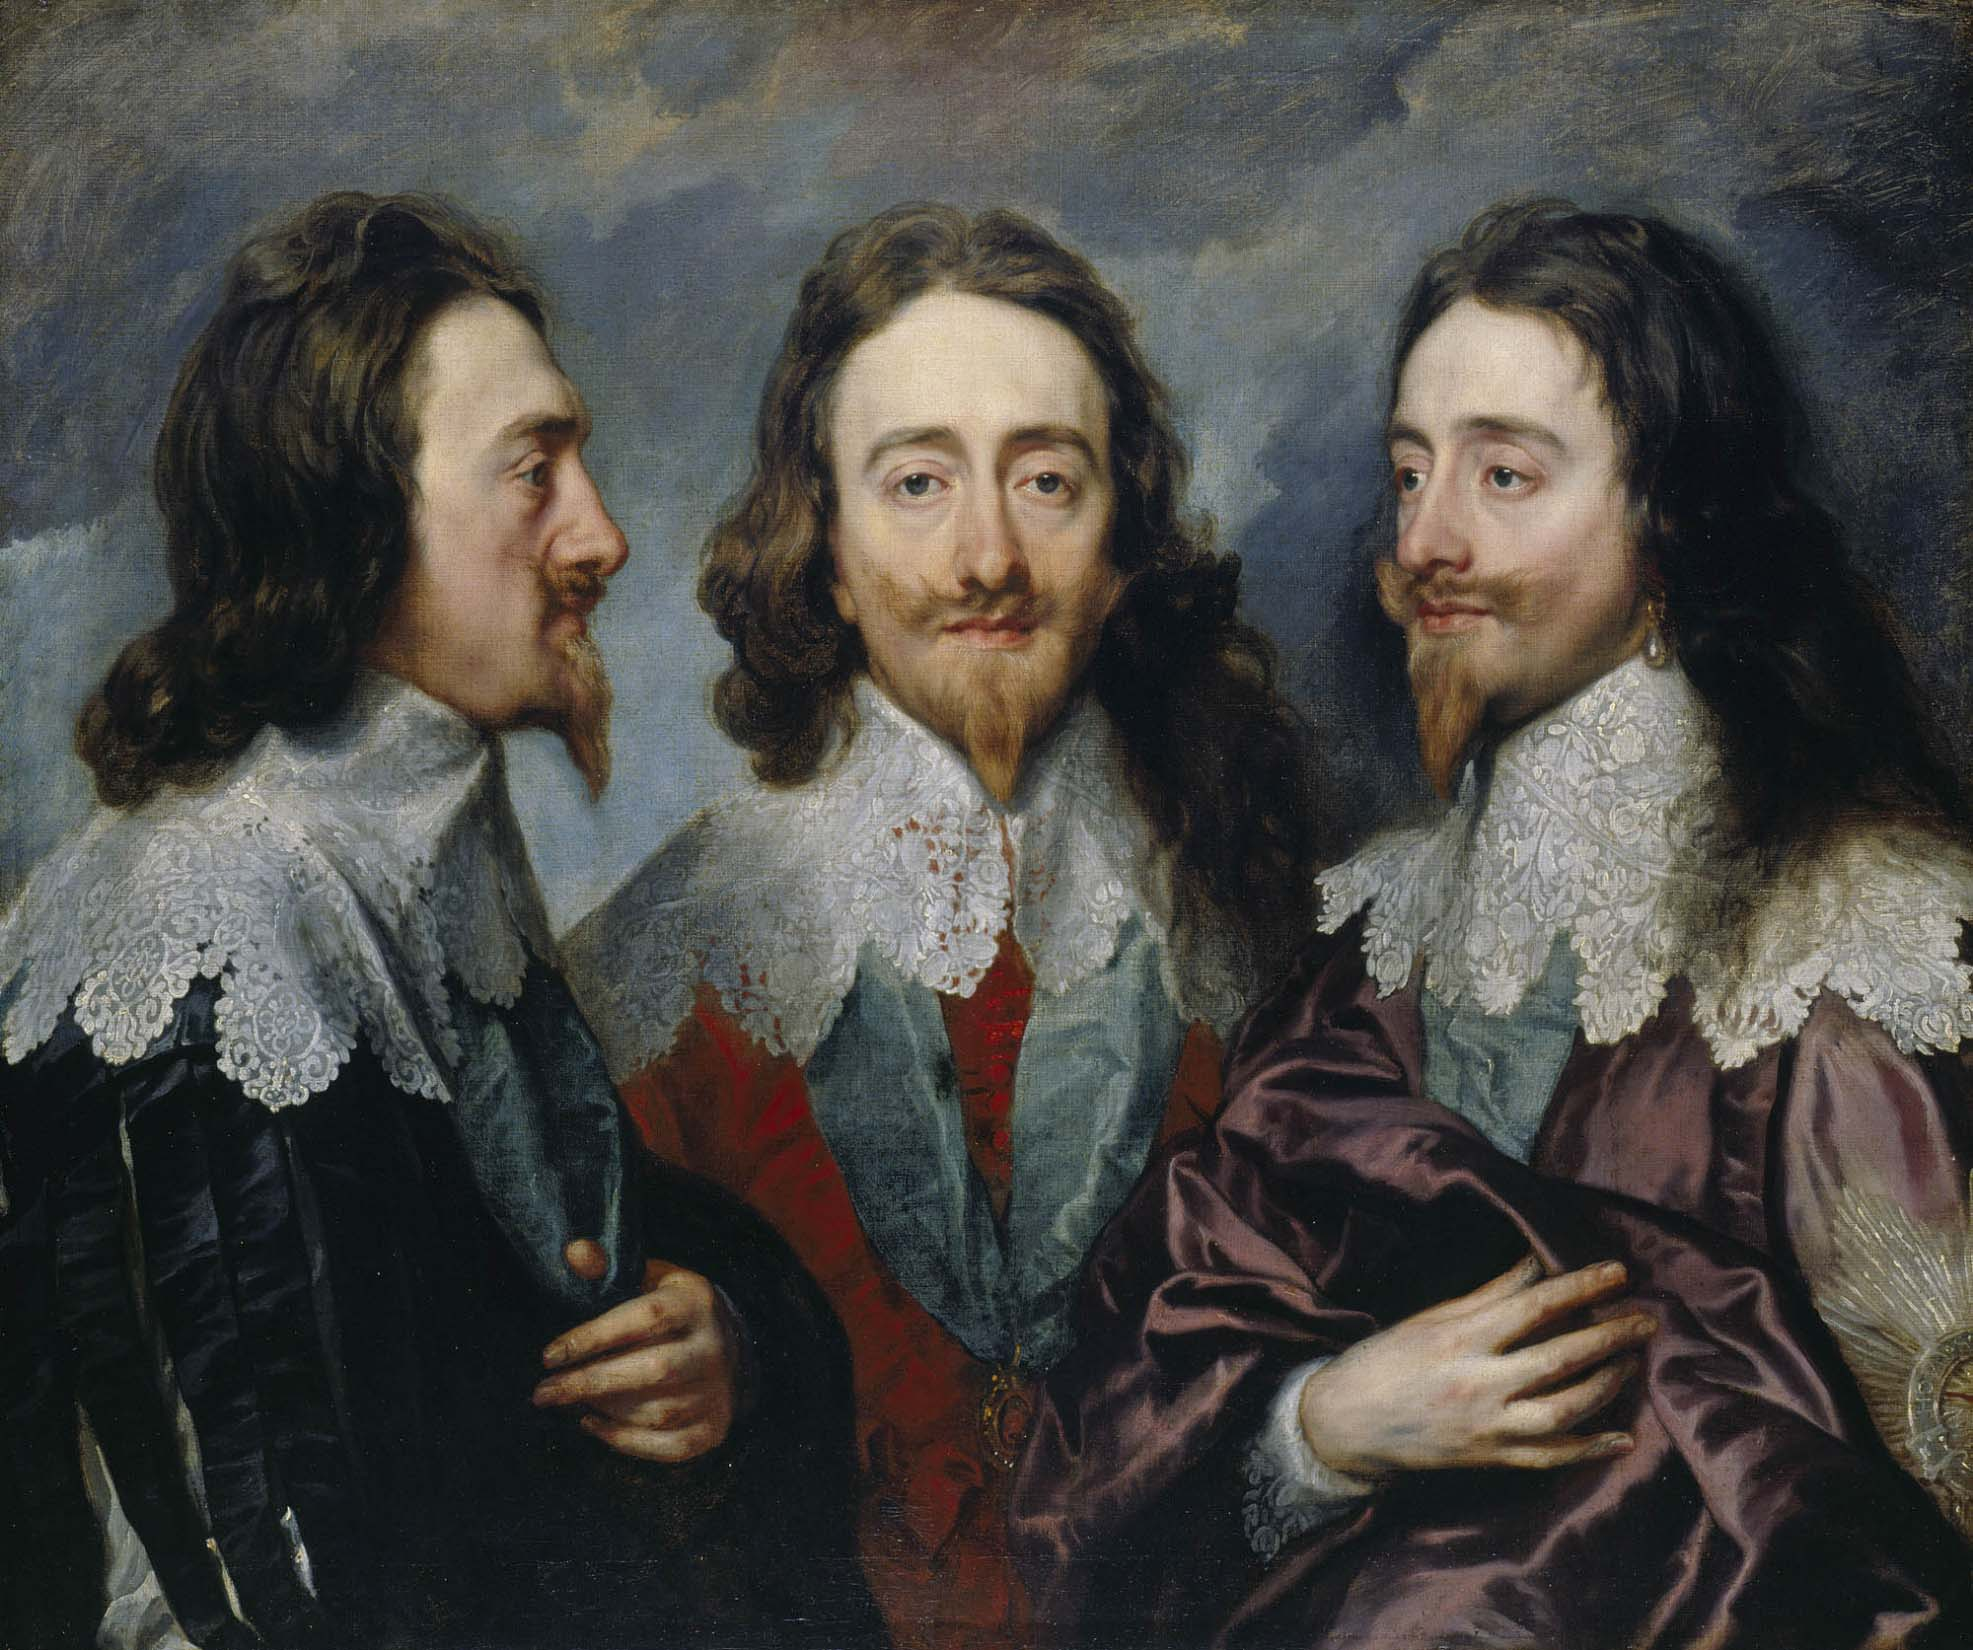 Triple_portrait_of_Charles_I